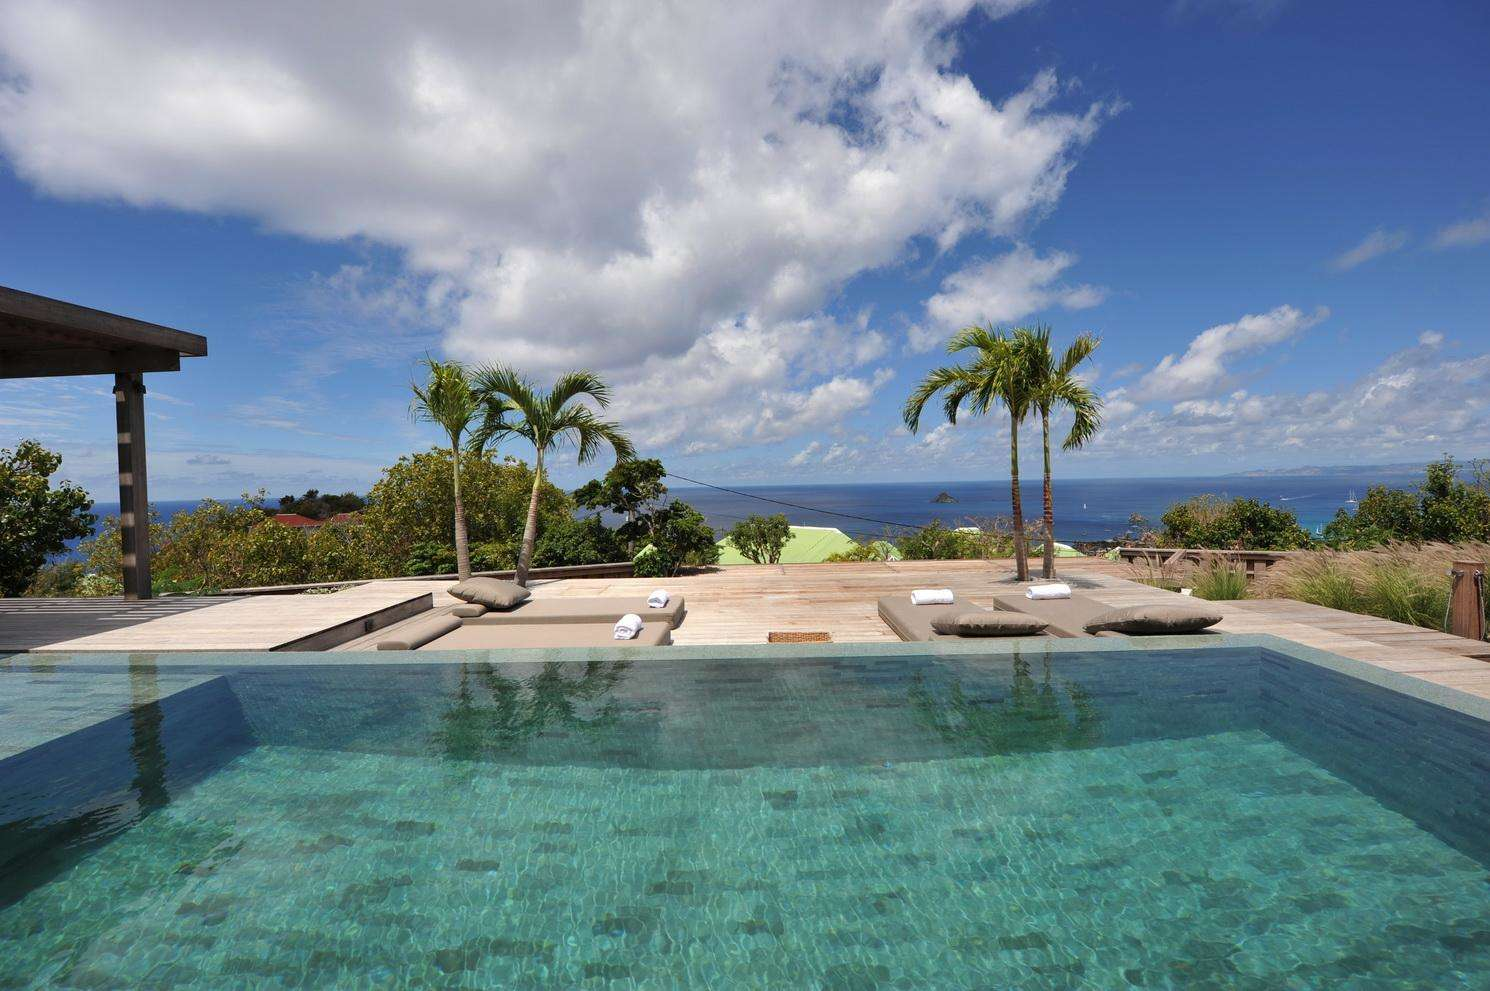 Luxury villa rentals caribbean - St barthelemy - Lurin - No location 4 - Rock U - Image 1/18